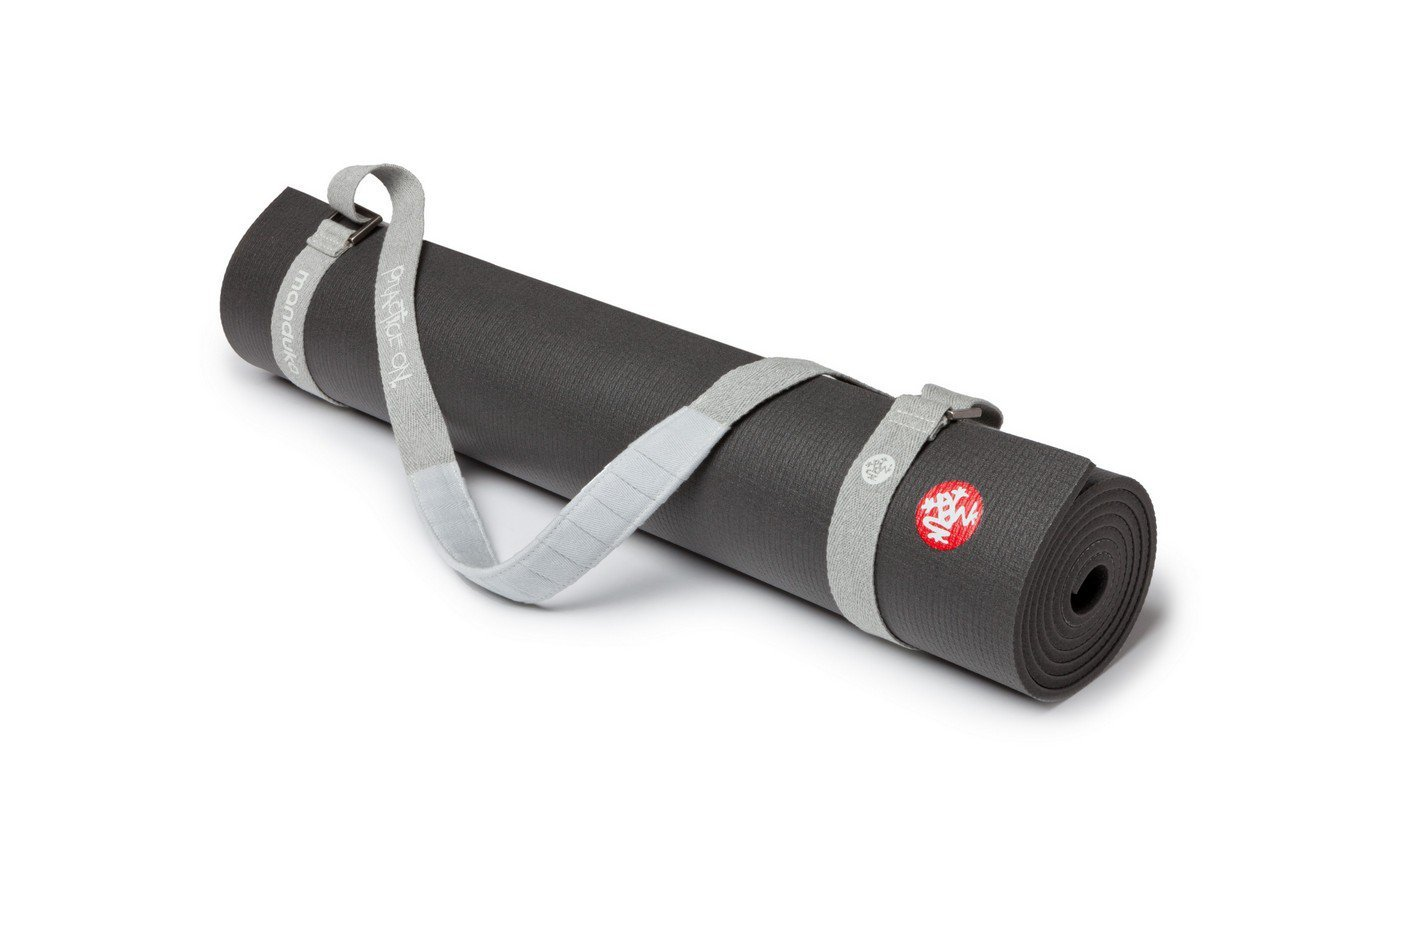 Amazon.com: Manduka Commuter - Yoga Mat Strap - Heather ...